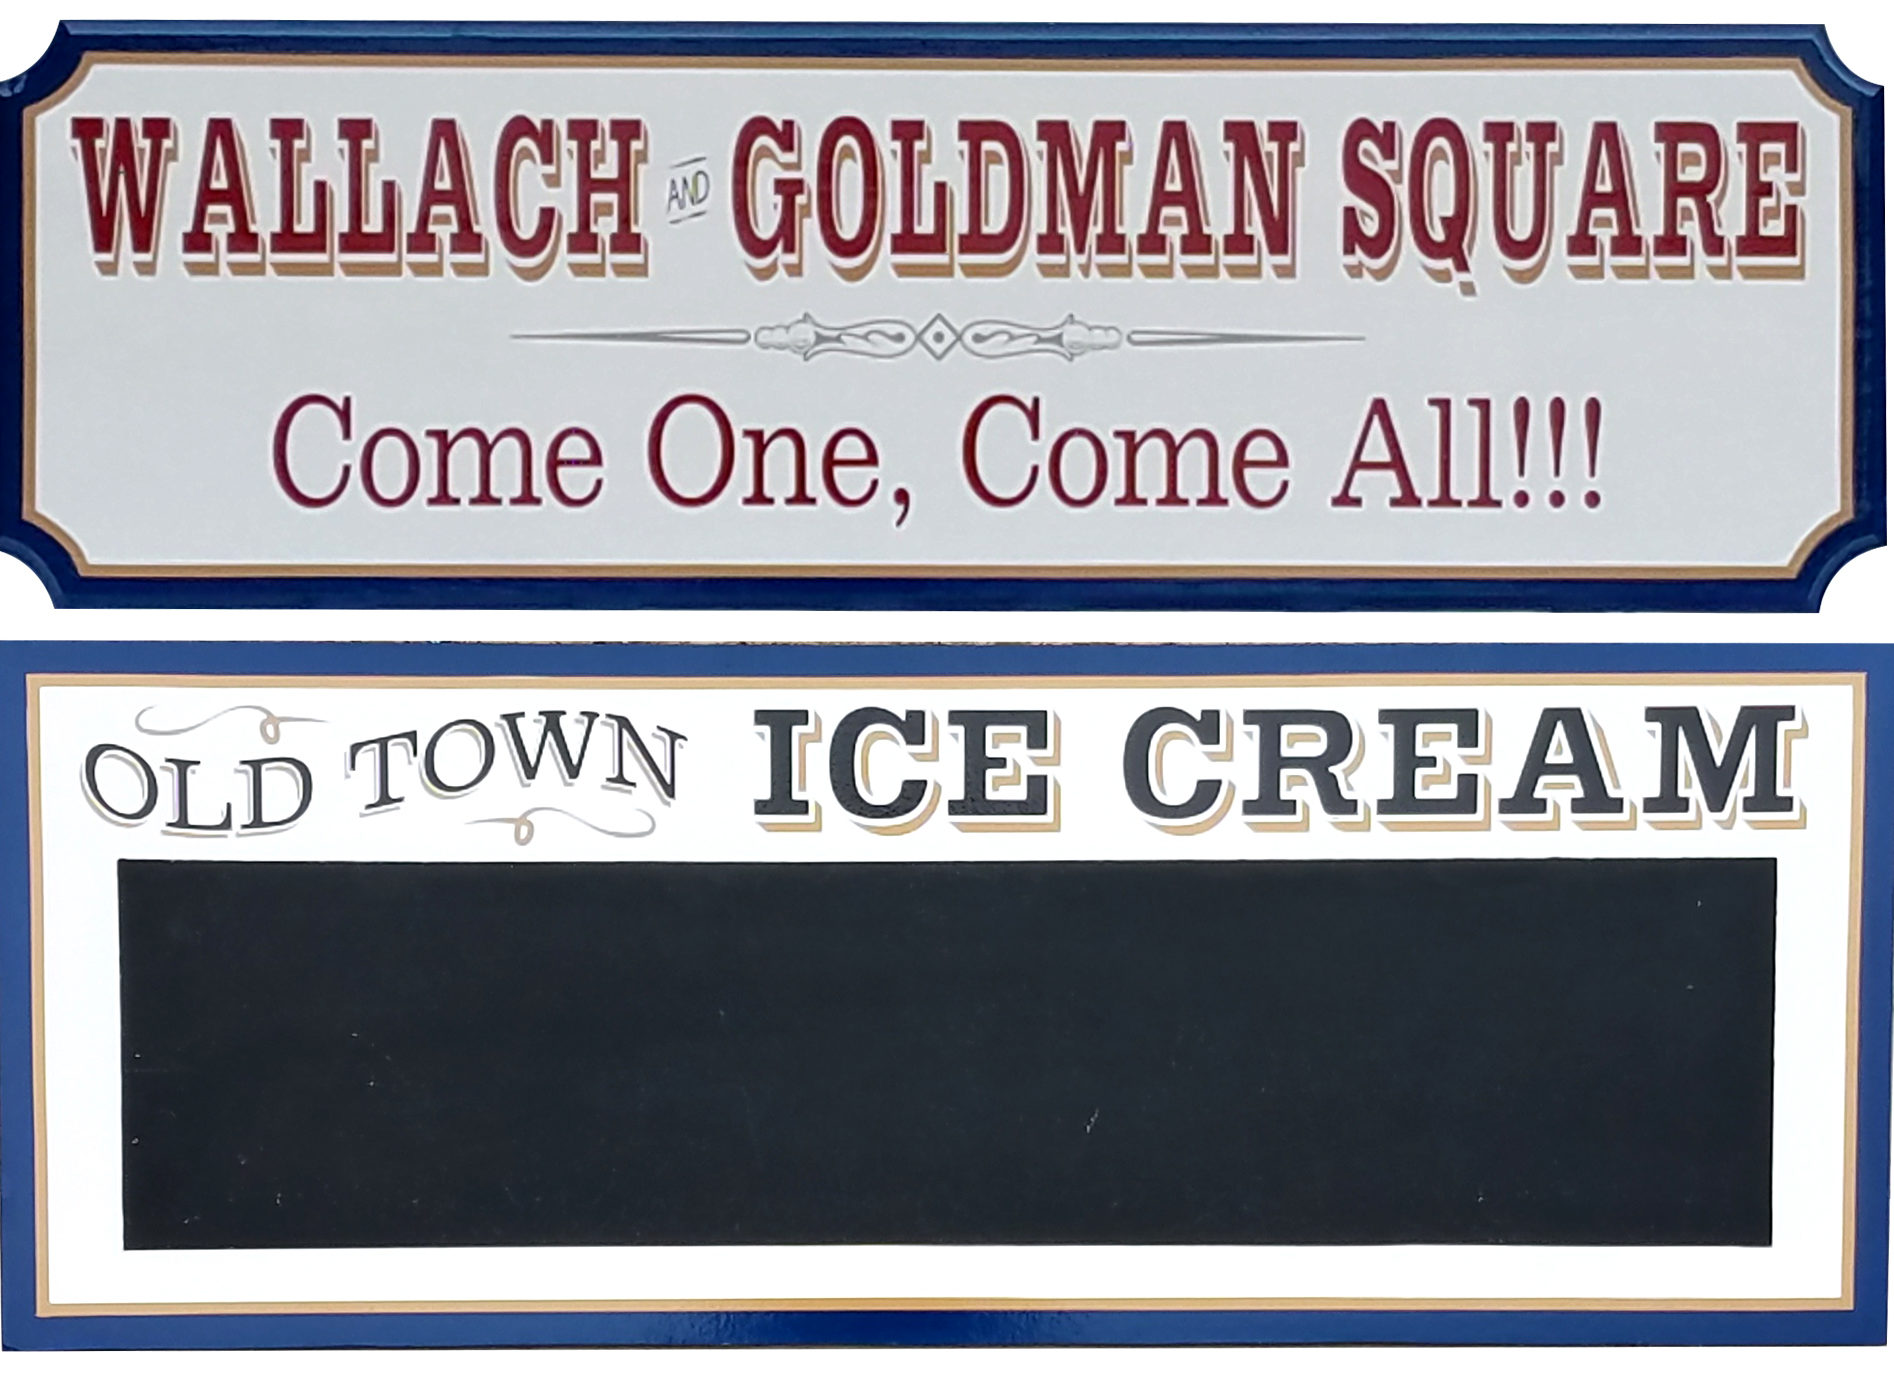 Wallach and Goldman Square